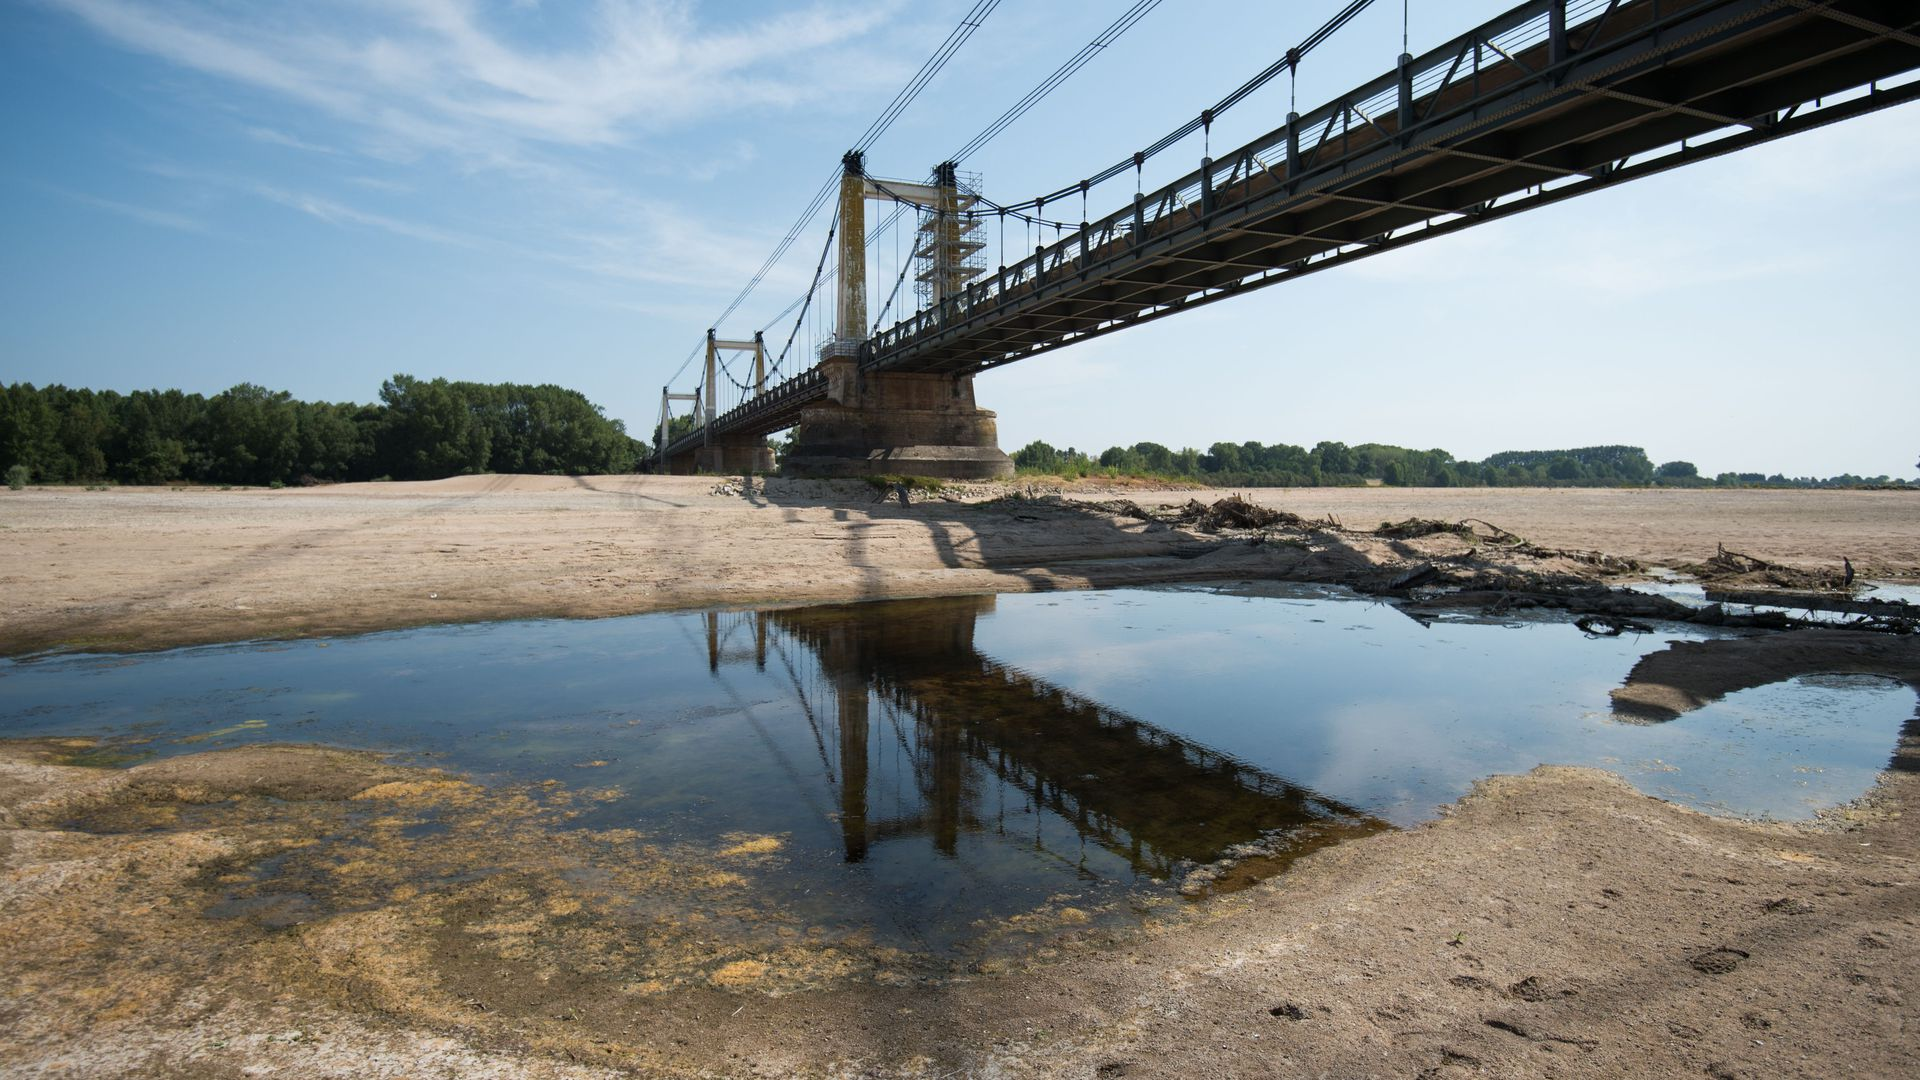 This image shows a mostly dry riverbed with a large bridge over it and trees in the distance